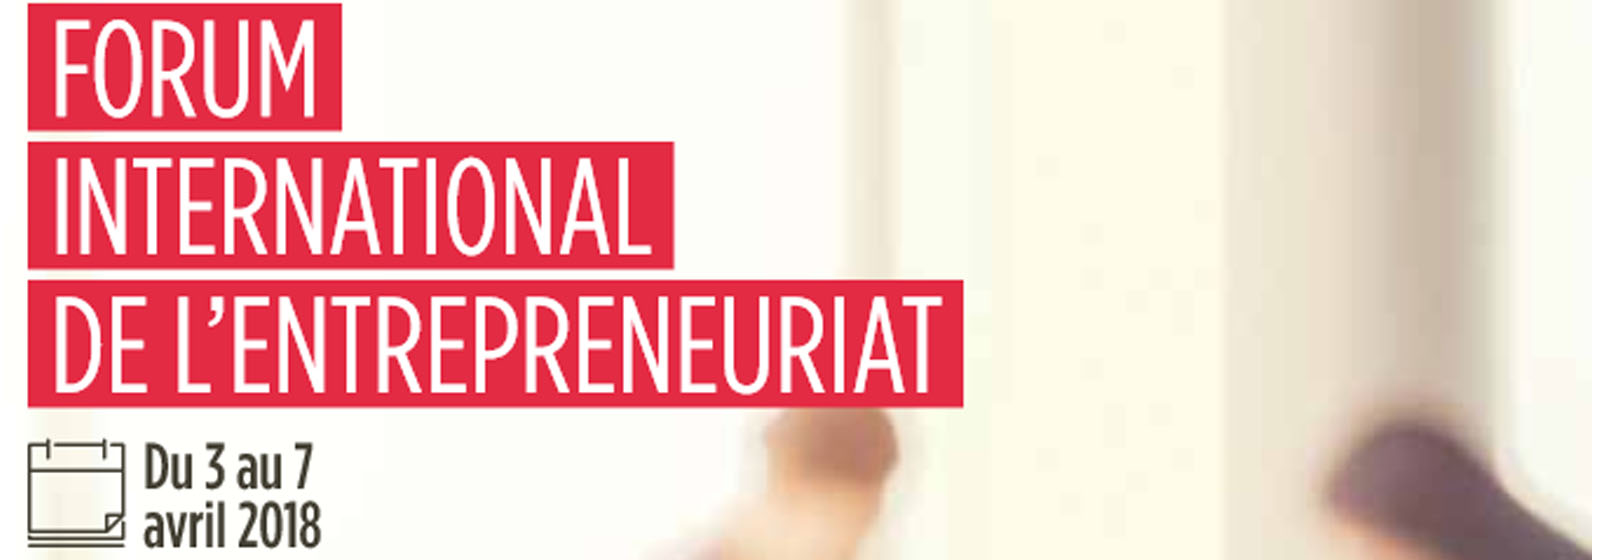 6 étudiants de Team Academy et de BEX au Forum international de l'entrepreneuriat